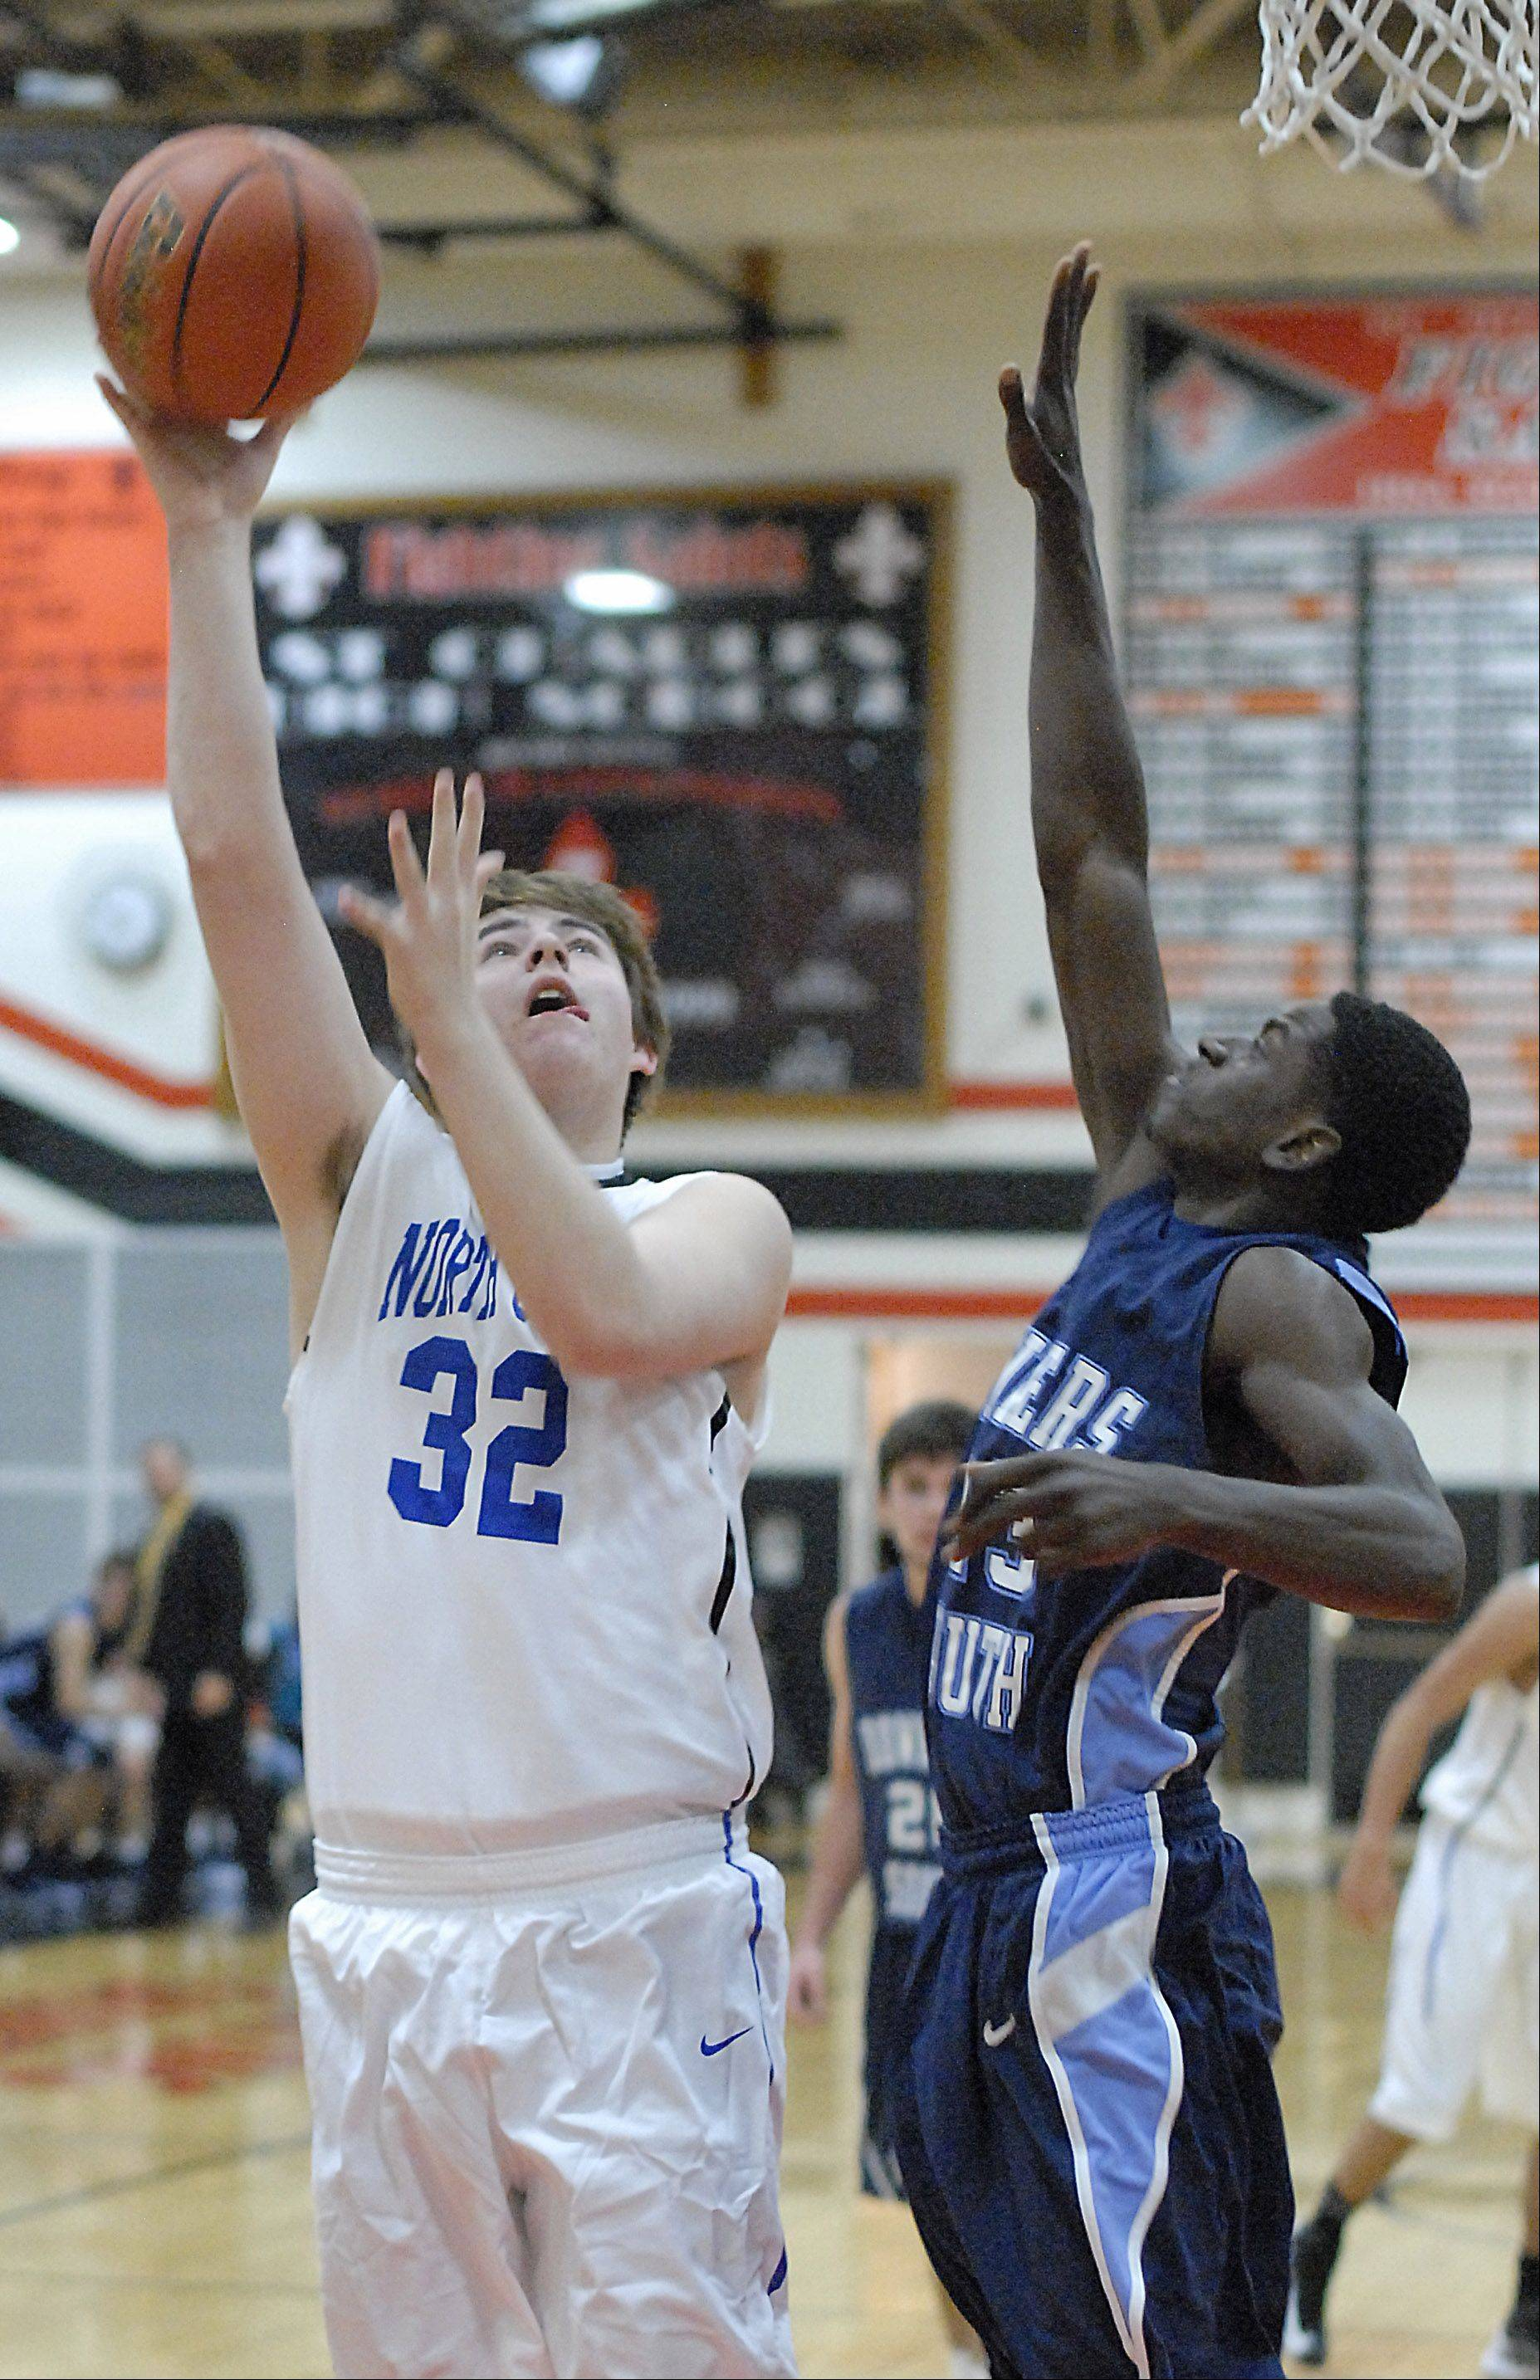 St. Charles North's Jack Callaghan shoots over an attempted block by Downers Grove South's Paul Engo III in the third quarter on Friday, November 23.